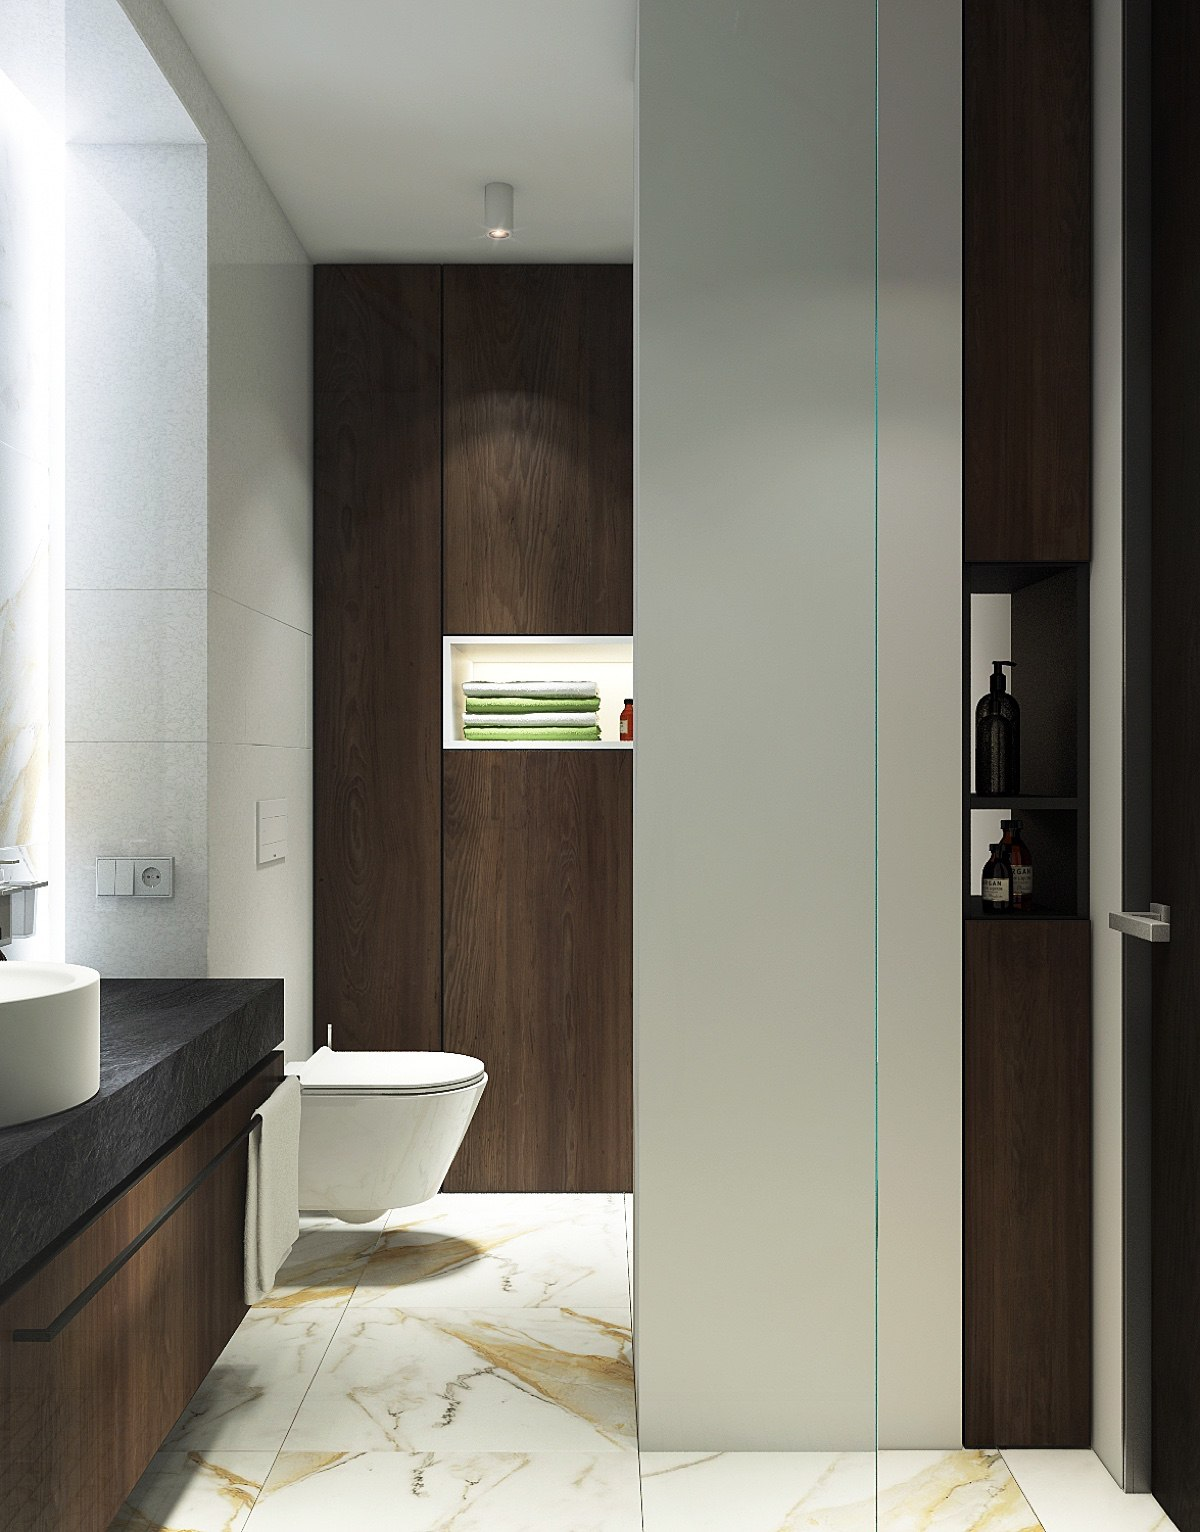 Wood Accent Bathroom Marbled Floor - Spacious looking one bedroom apartment with dark wood accents